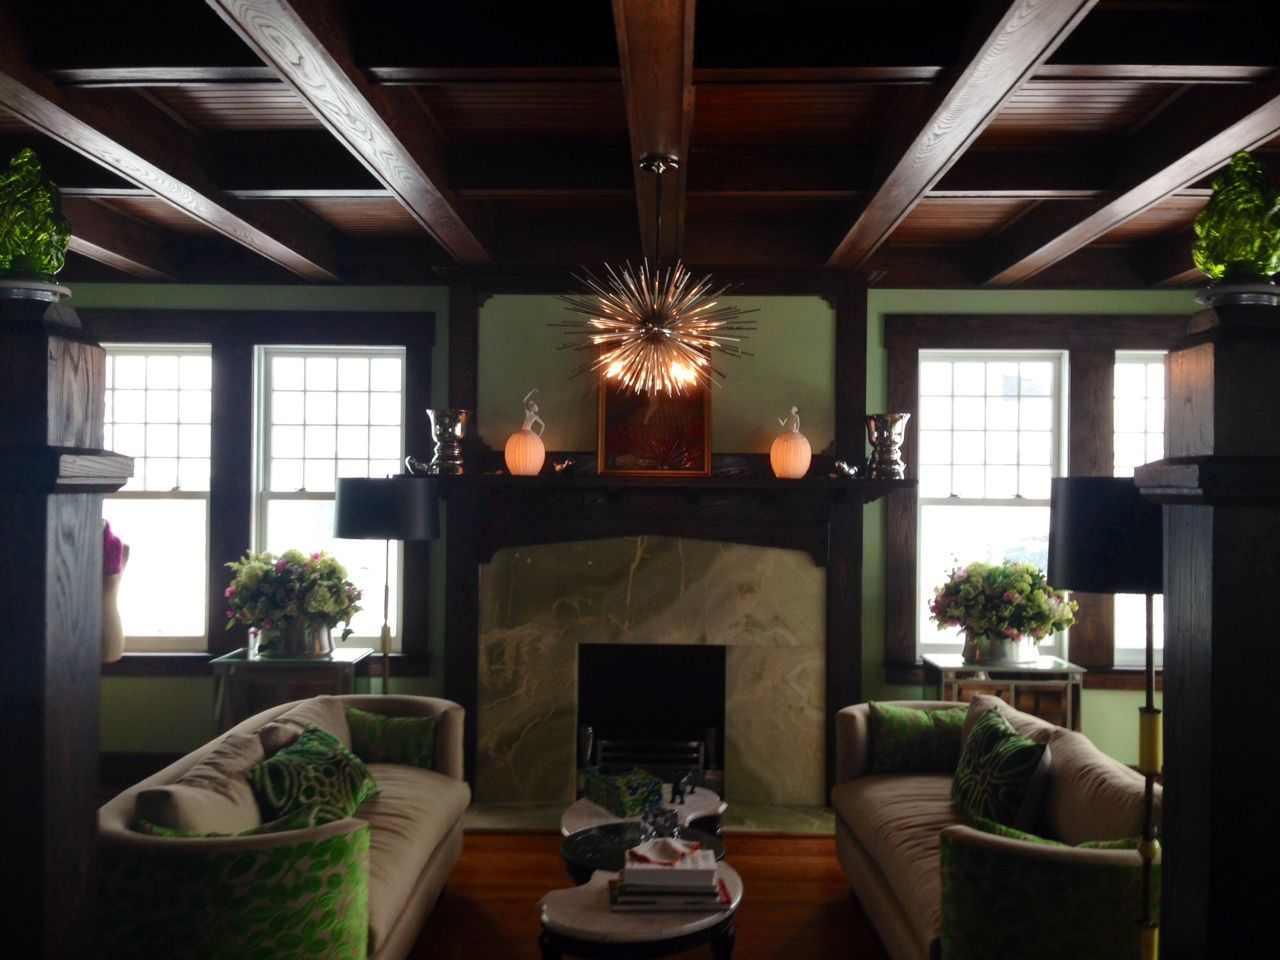 Restoration of a 1905 Craftsman home - Degnan Design | DDG Historic on 1905 colonial home, 1905 bungalow home, 1905 victorian home,